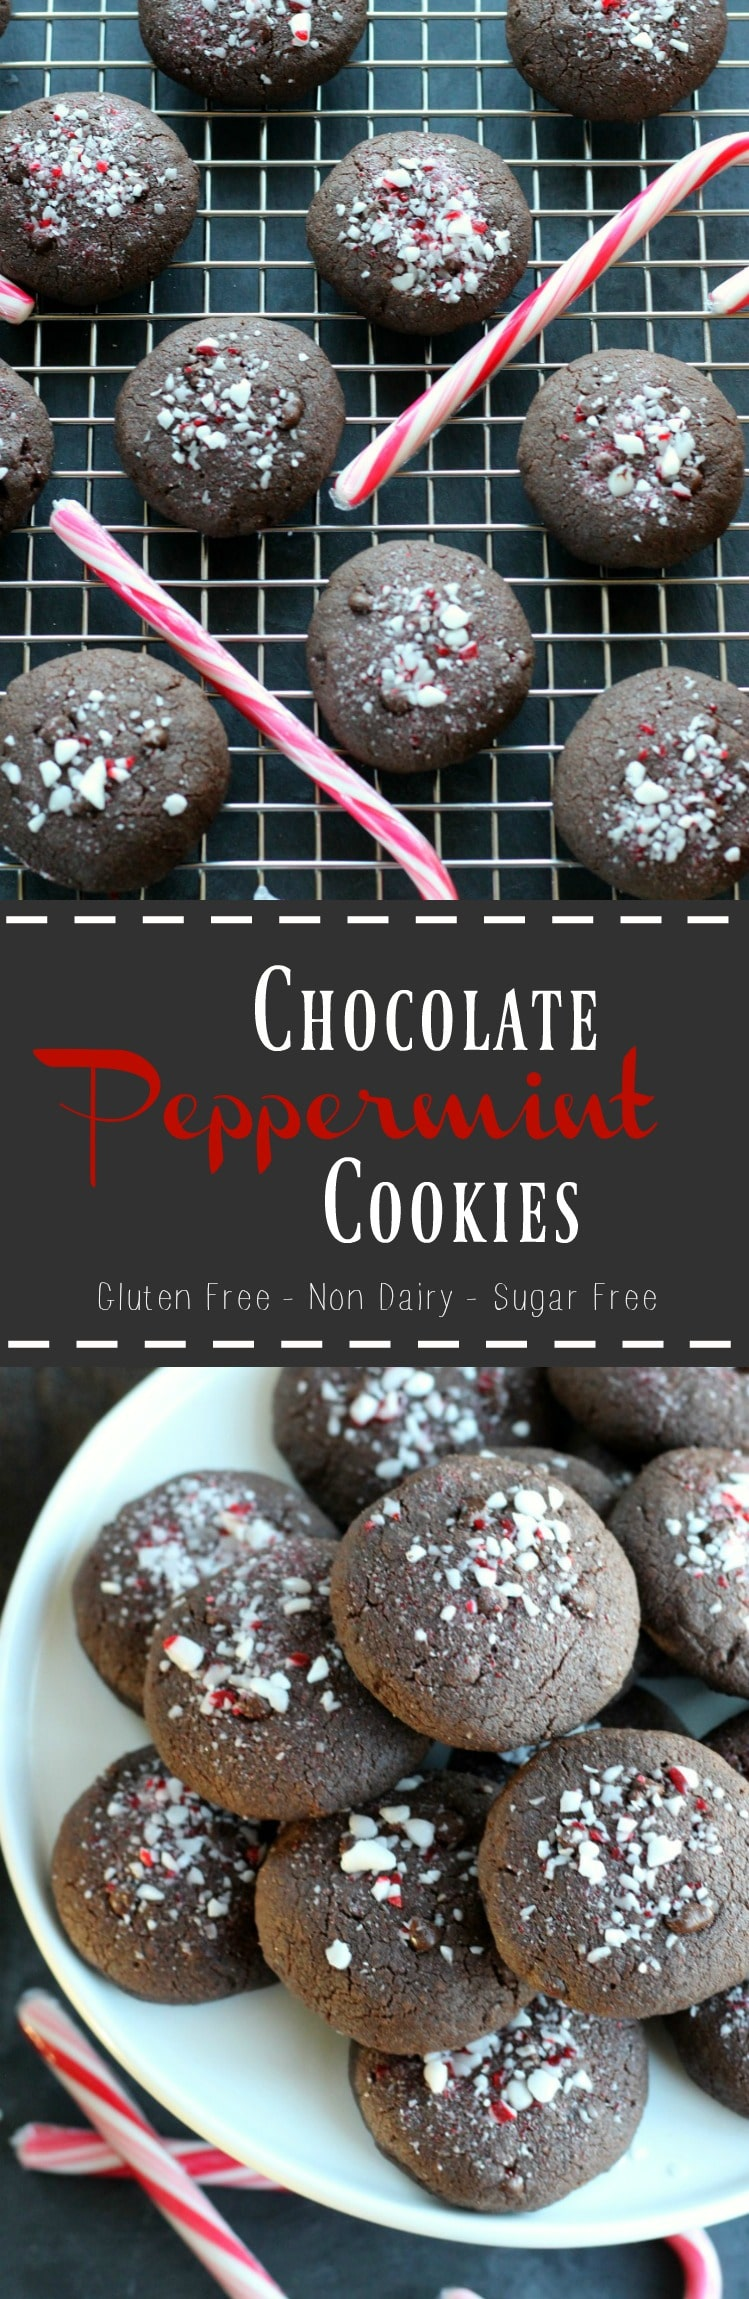 Double Chocolate Peppermint Cookies (Vegan + Gluten Free) | gardeninthekitchen.com